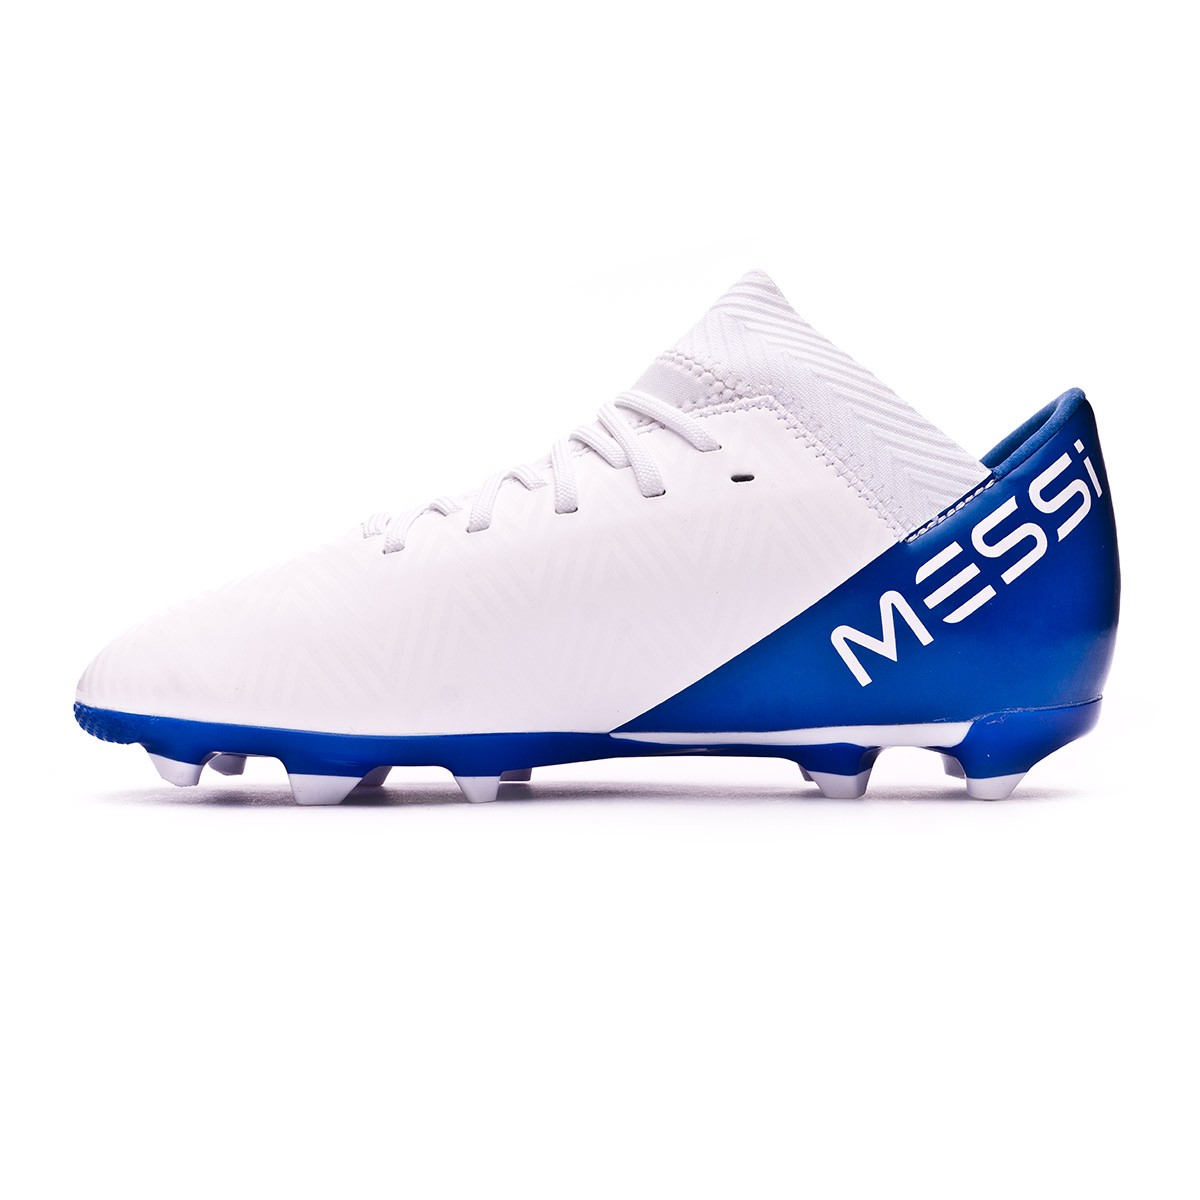 5ebabe52f Boot adidas Kids Nemeziz Messi 18.3 FG White-Core black-Football blue Niño  - Football store Fútbol Emotion